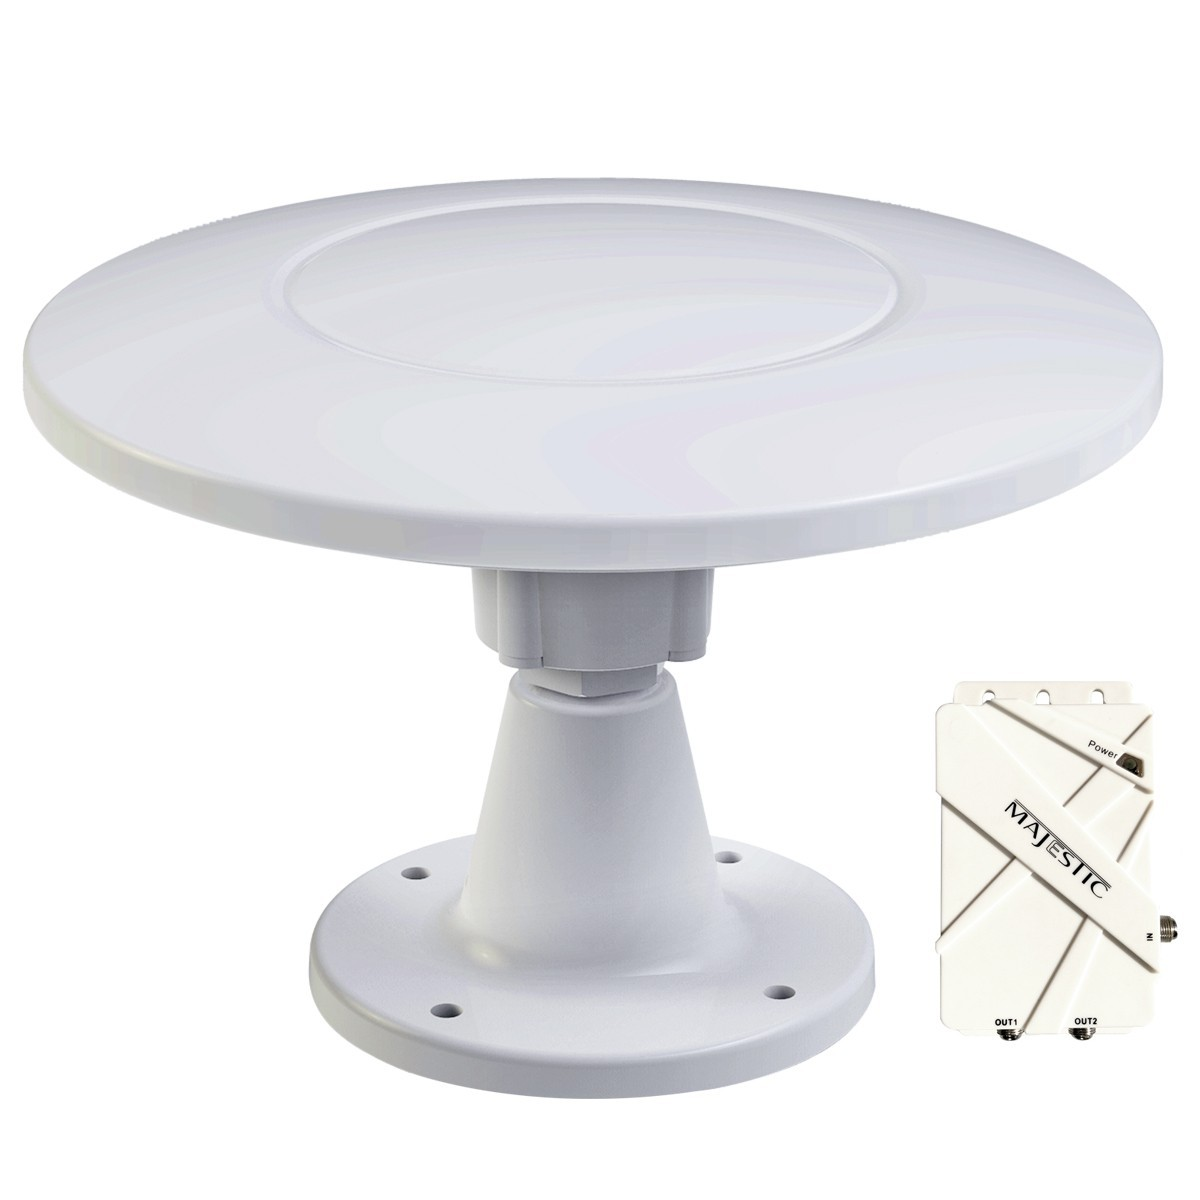 Majestic UFO X High Performance TV antenna - The Best Marine TV Antenna out there